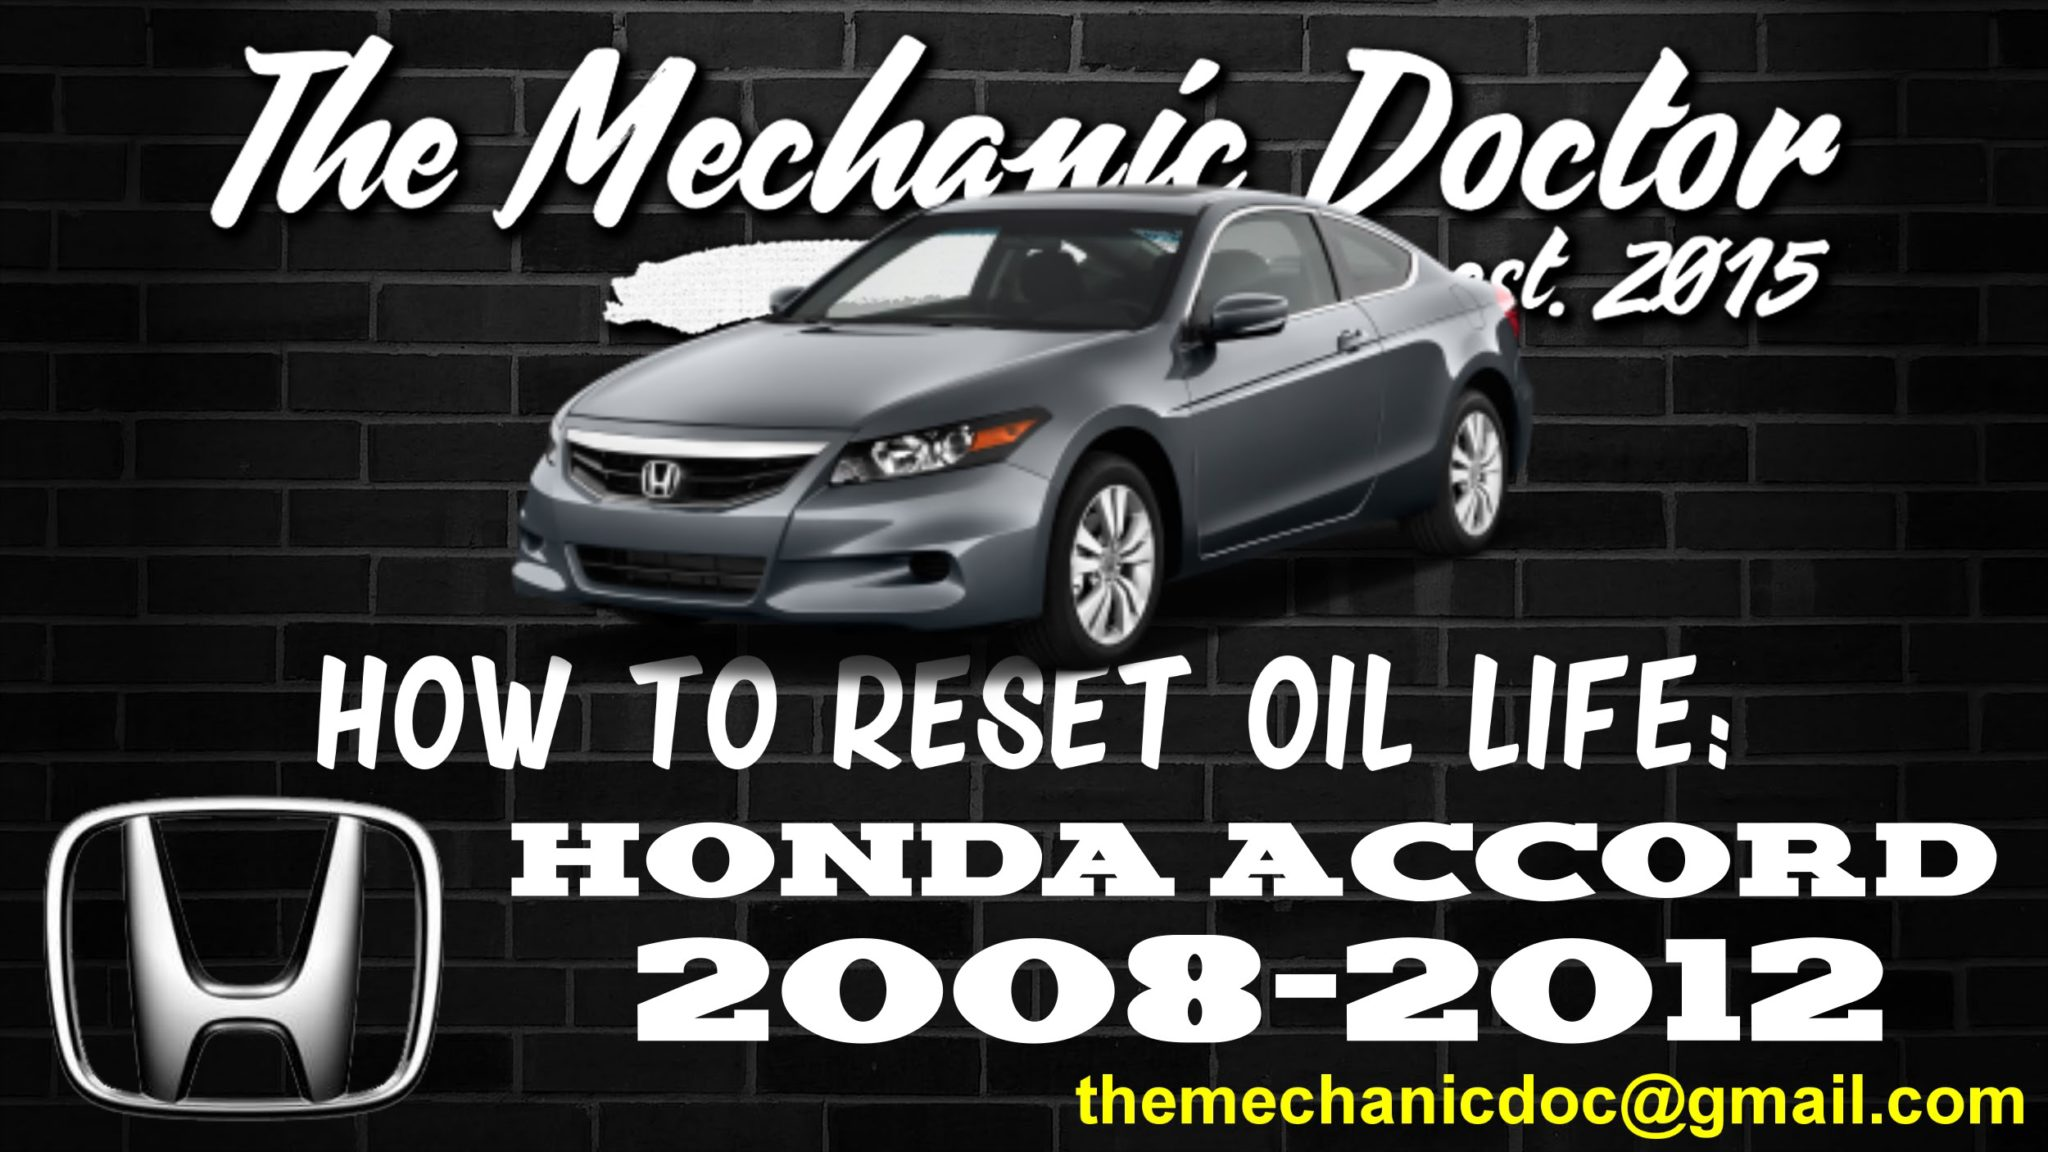 How to reset oil life: Honda Accord 2008, 2009, 2010, 2011